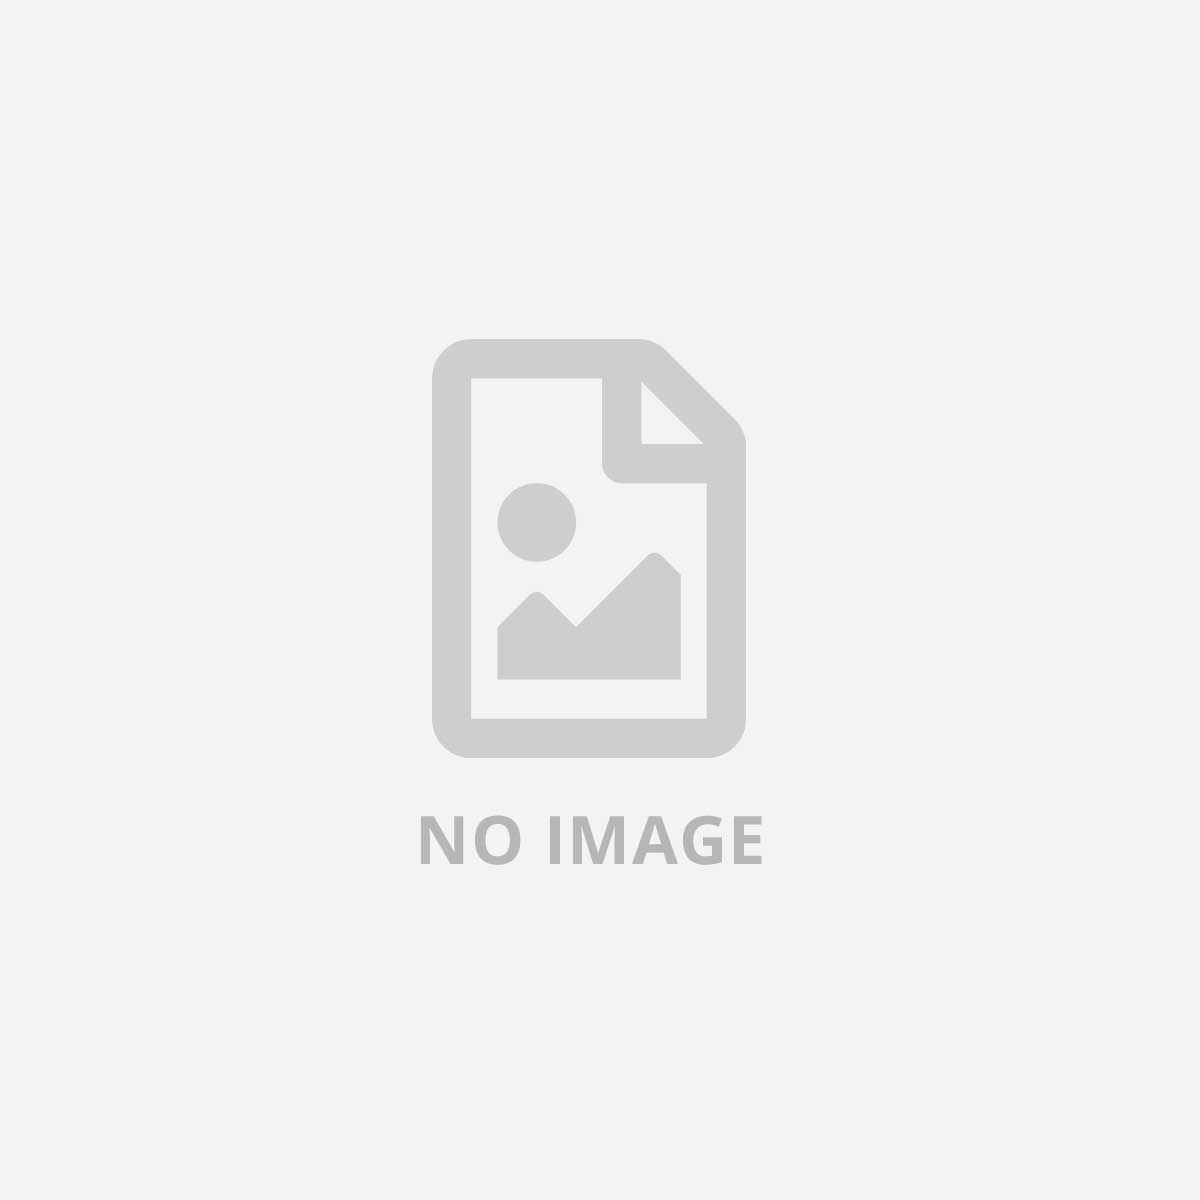 VERBATIM DVD REWRITER USB EXT SLIM NERO